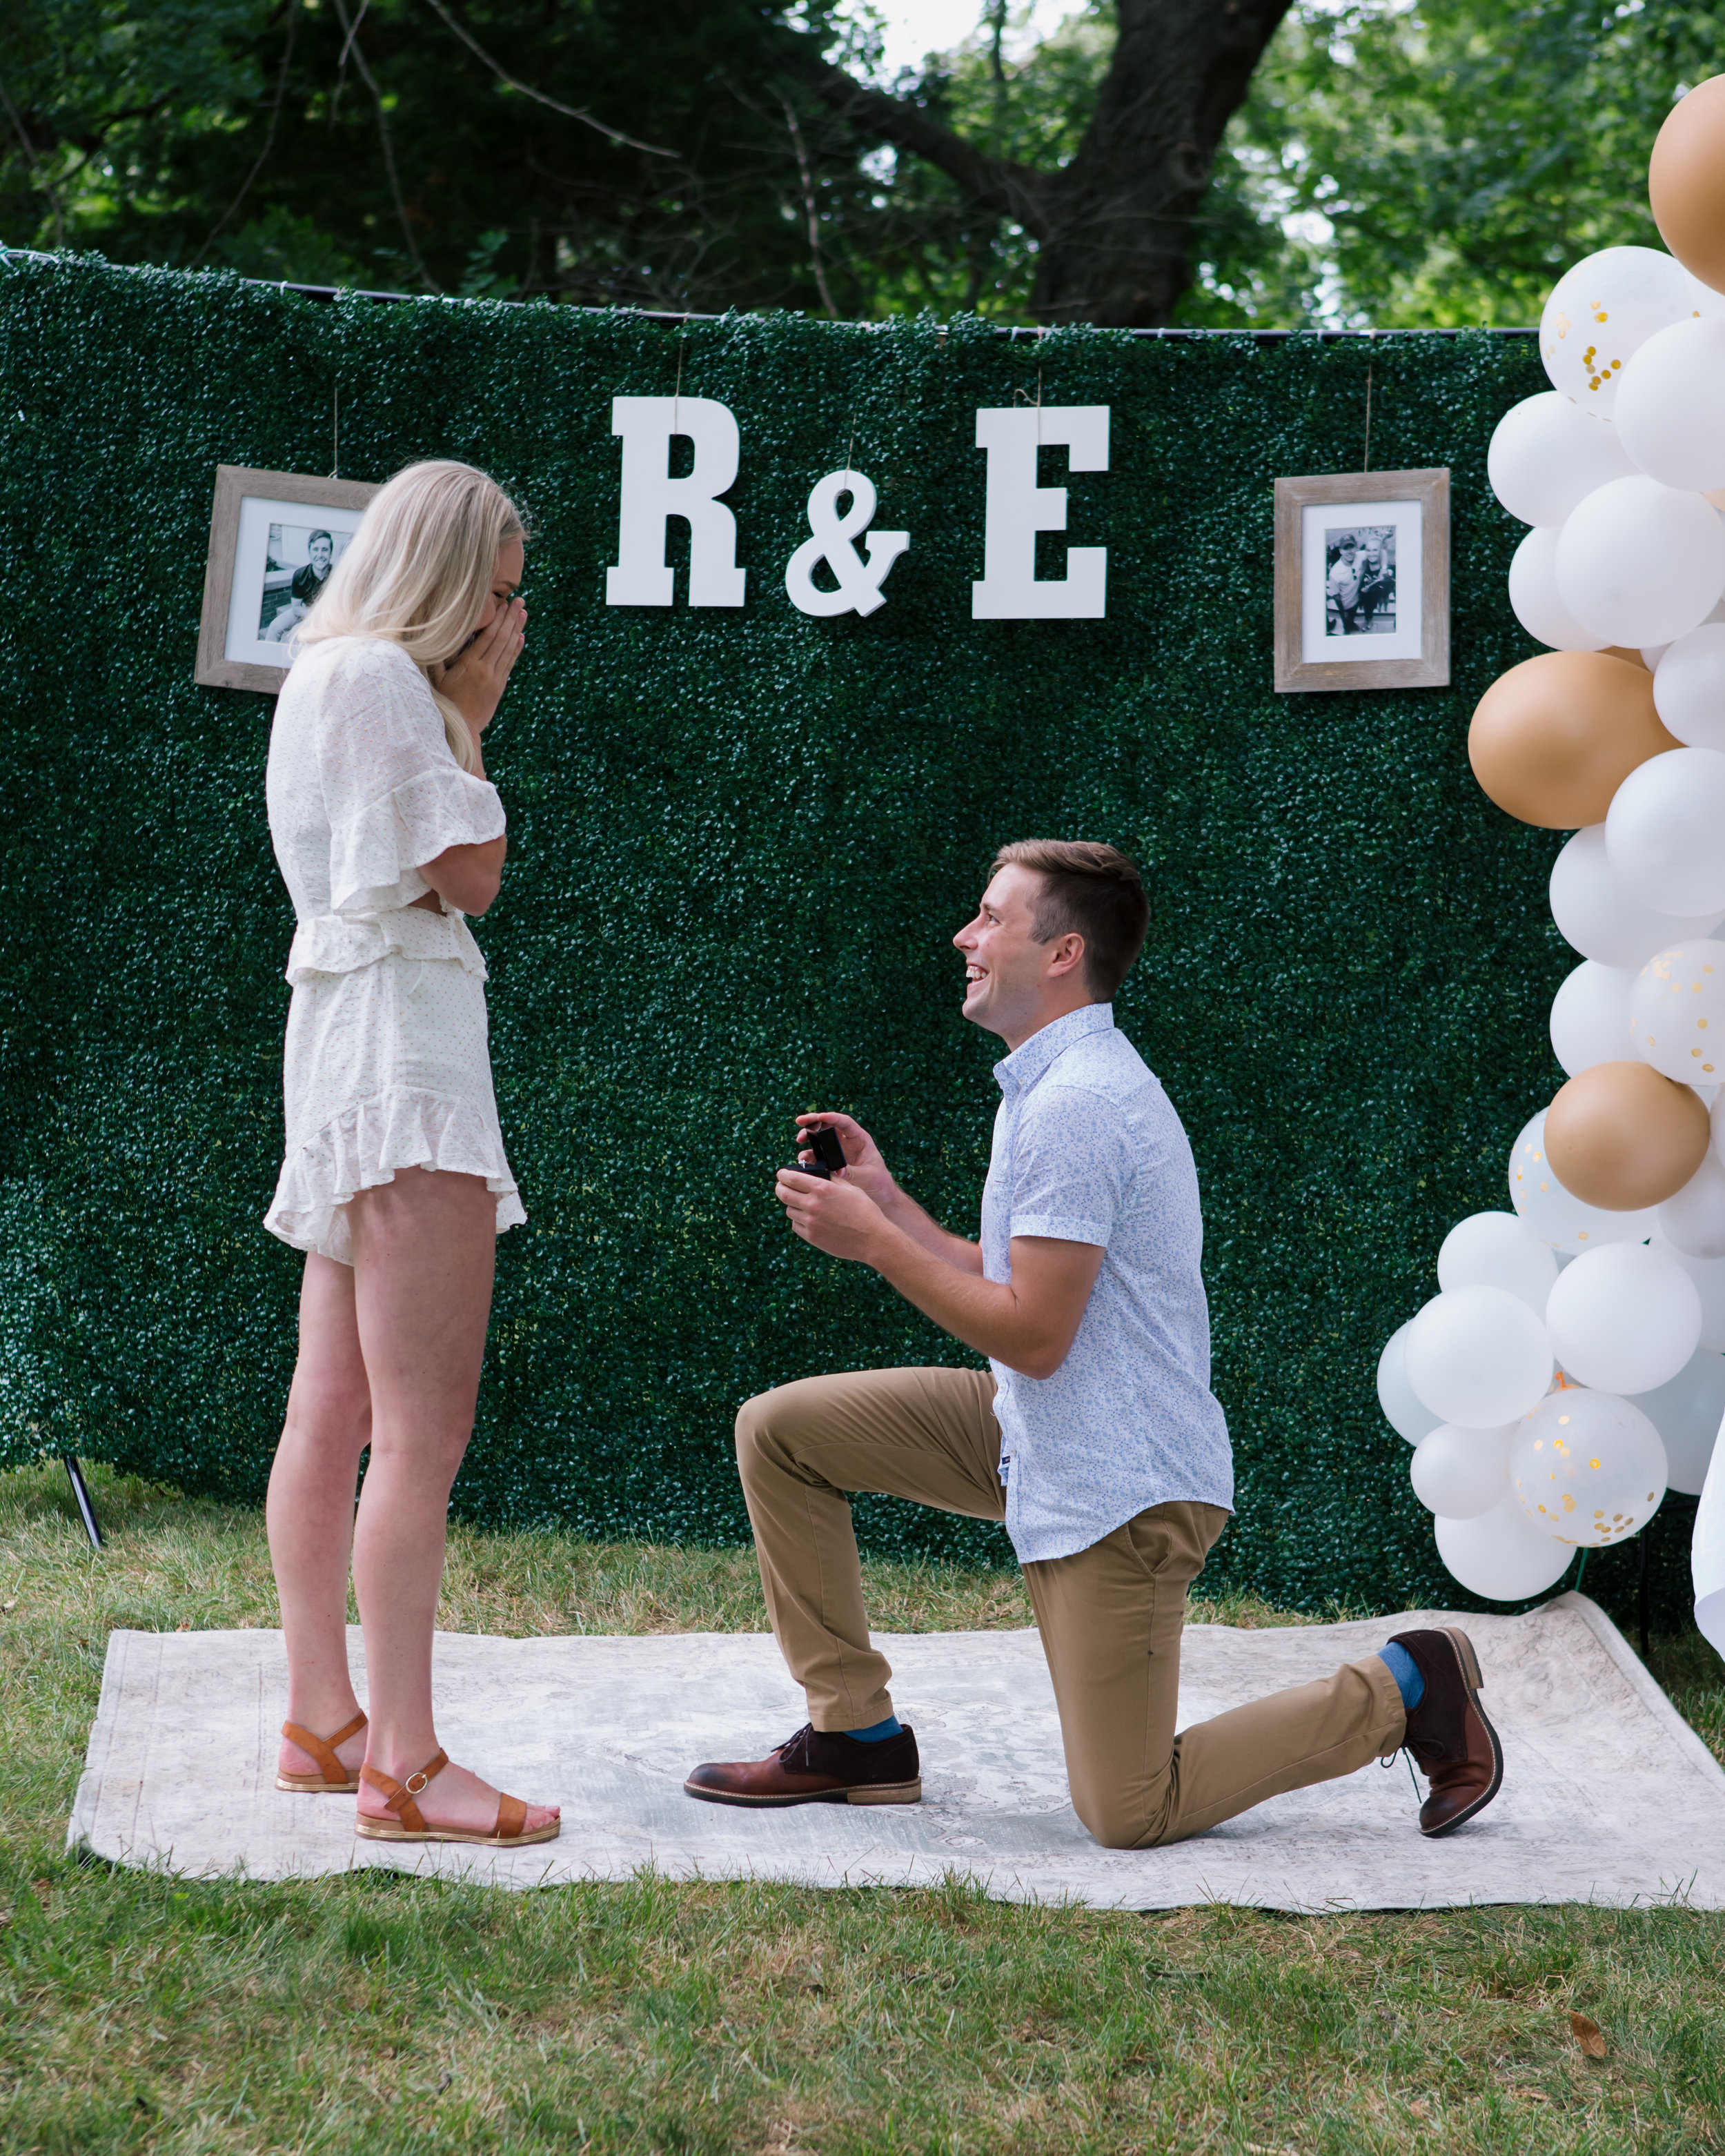 Our Engagement Story Proposal